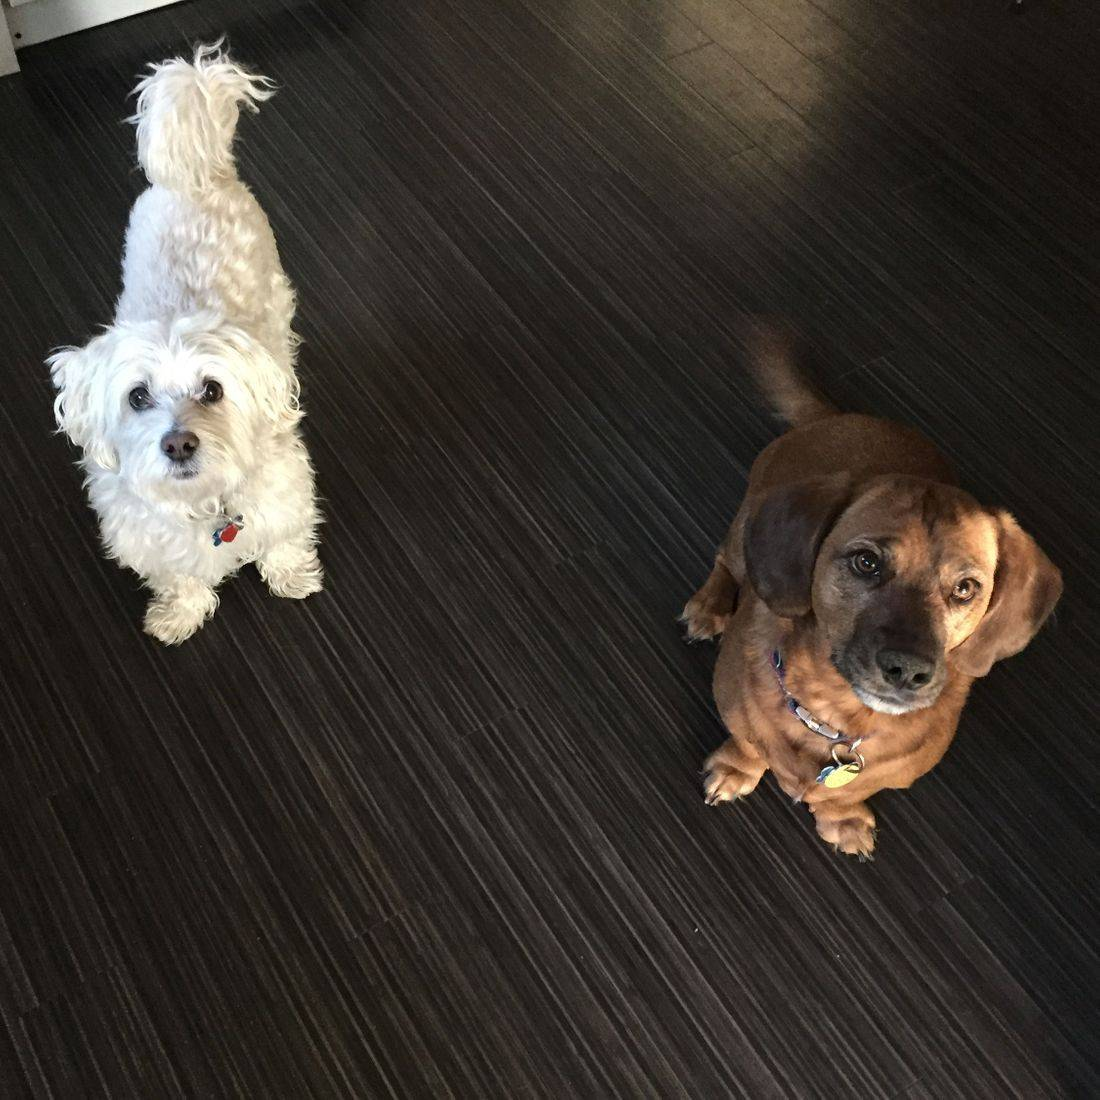 Photo of two dogs looking at the camera